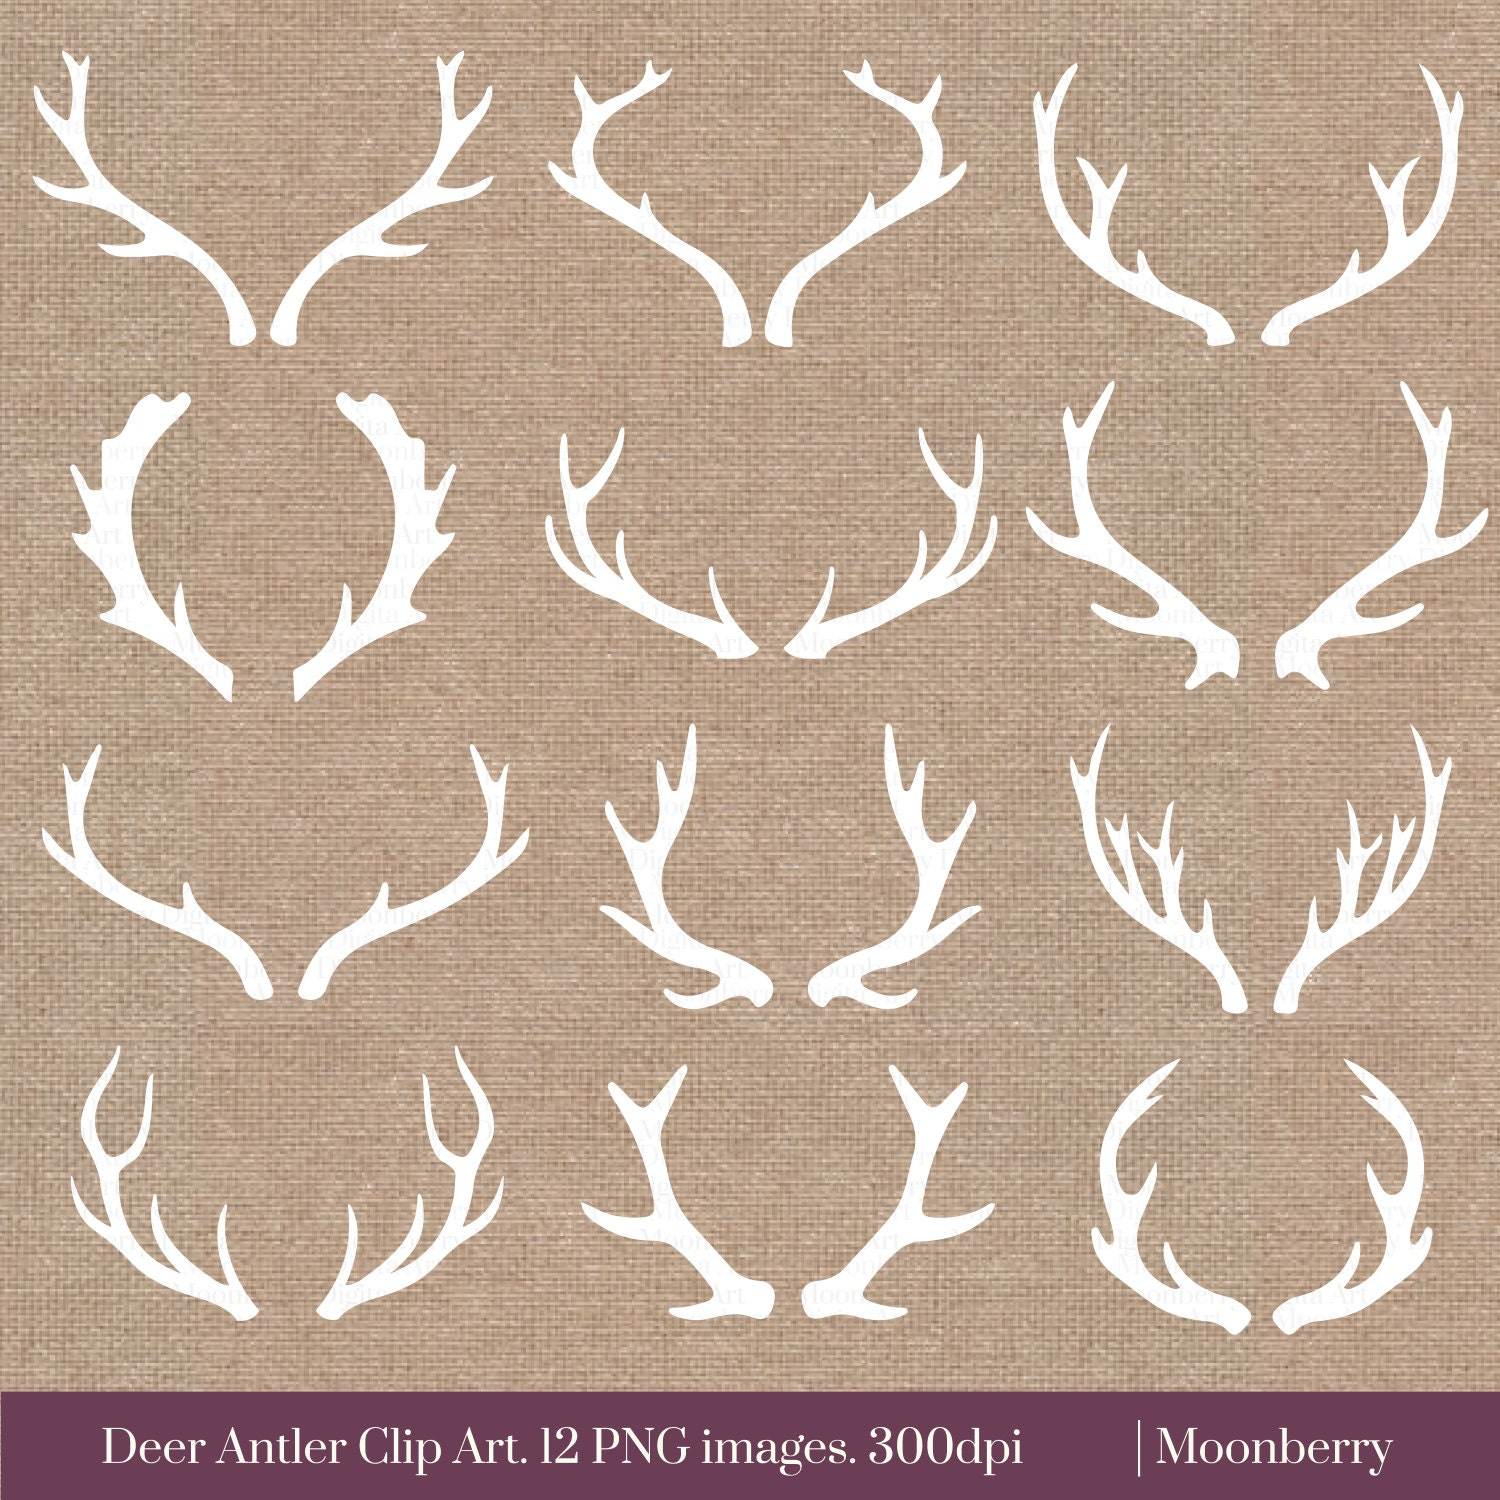 White Deer Antler Clip Art DEER ANTLER by MoonberryDigitalArt